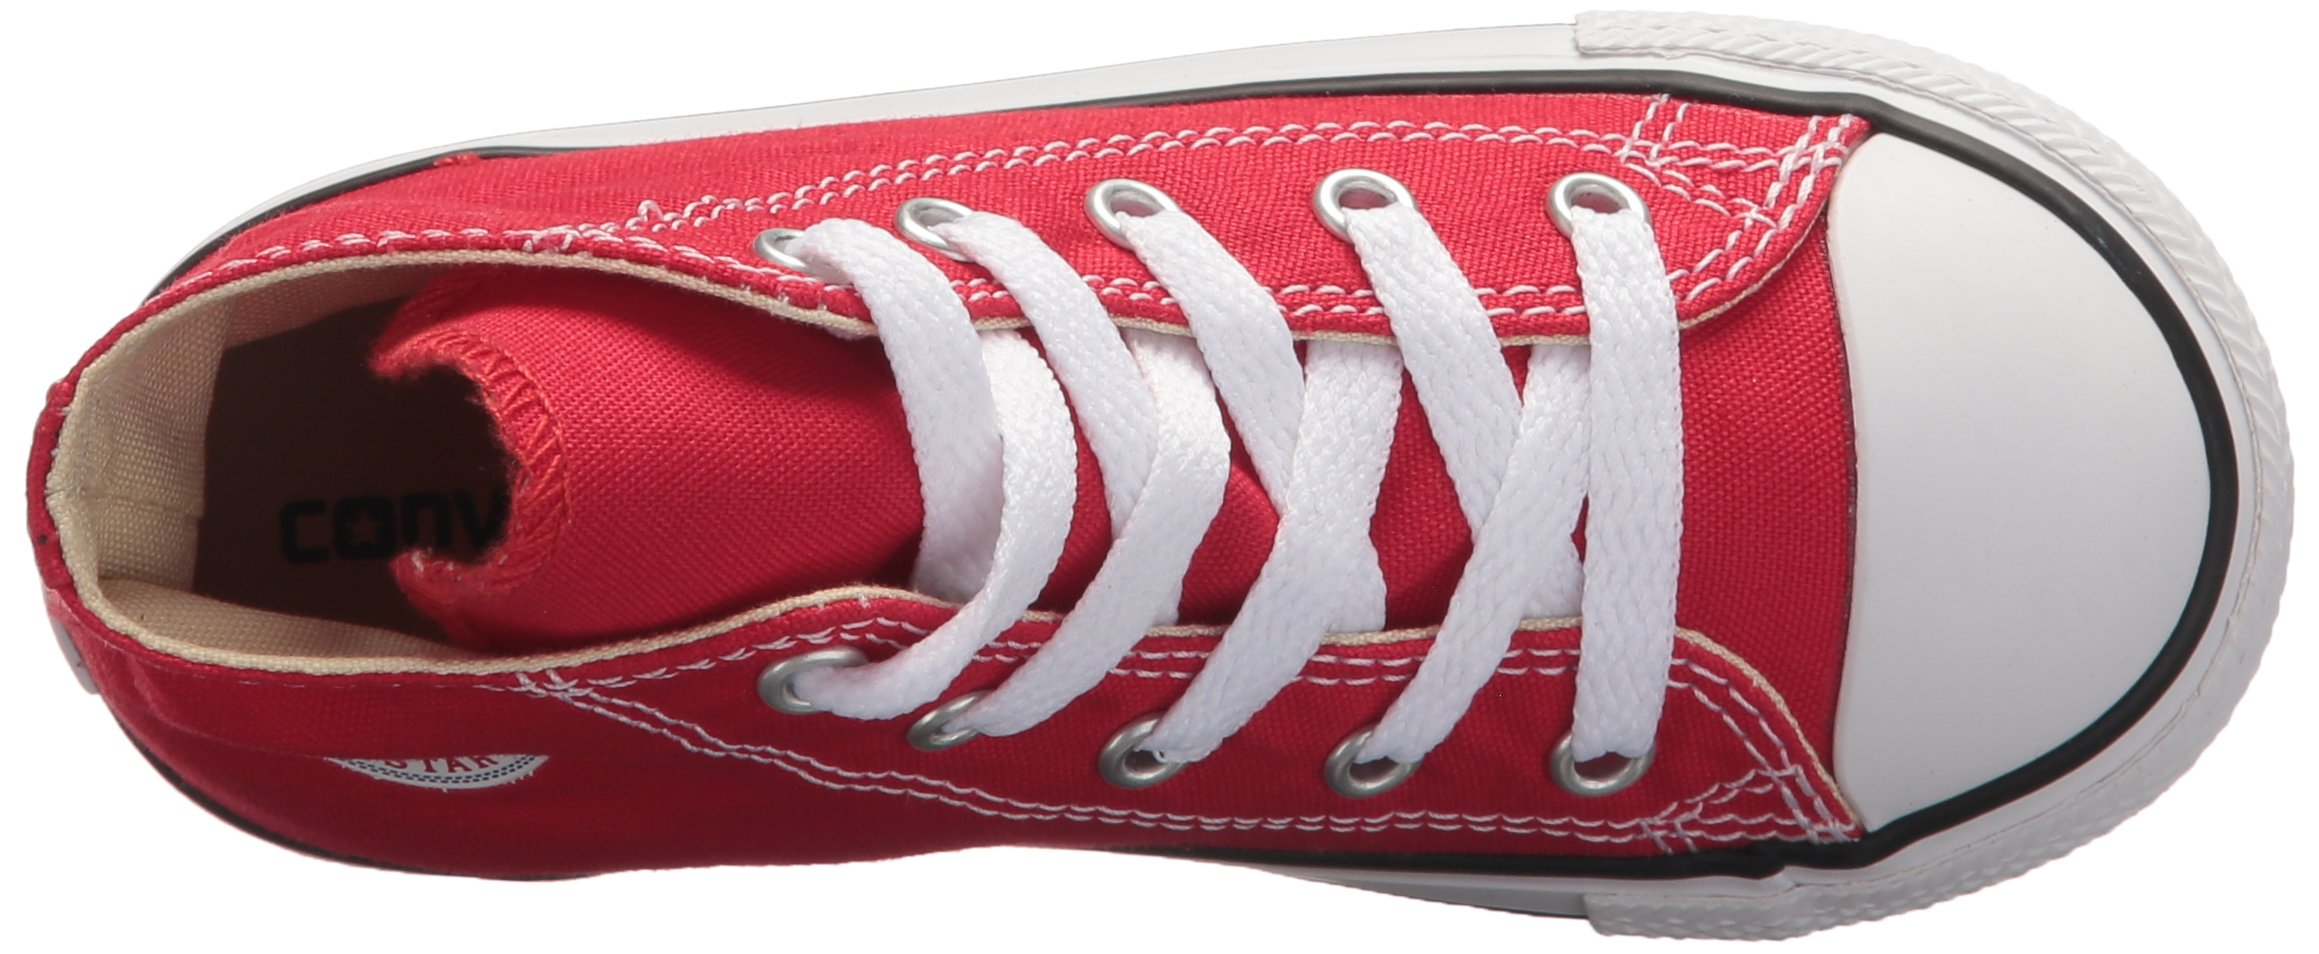 Converse Kids Chuck Taylor Classic Hi Red Sneaker - 10.5 by Converse (Image #12)